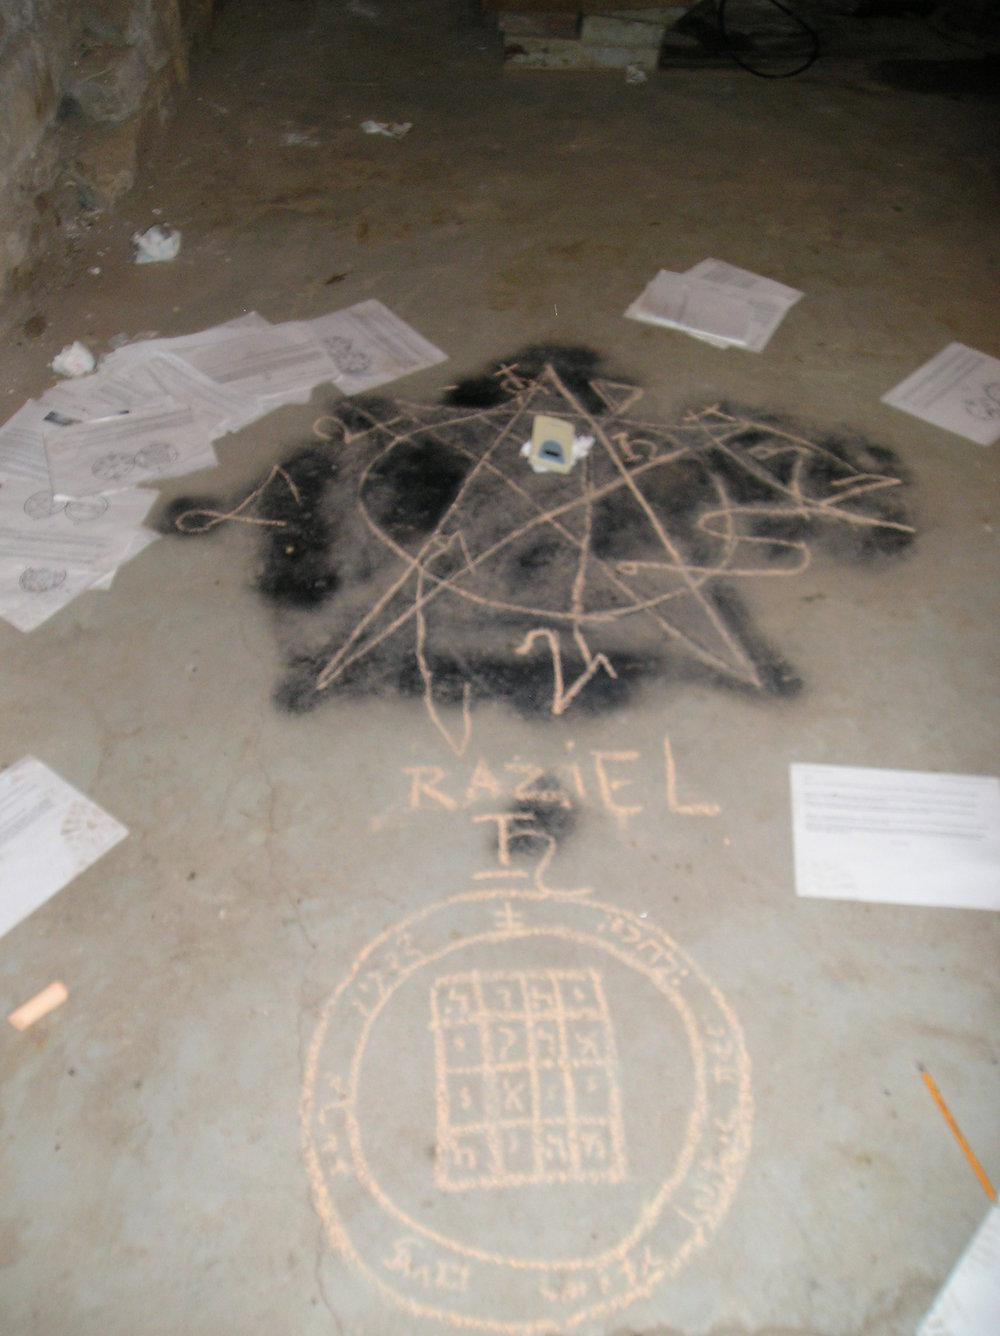 A demonologist tried to trace the outline of the pentagram left on the floor of the basement by a former tenant in an effort to determine what spells were employed.  Protective sigils were then added.